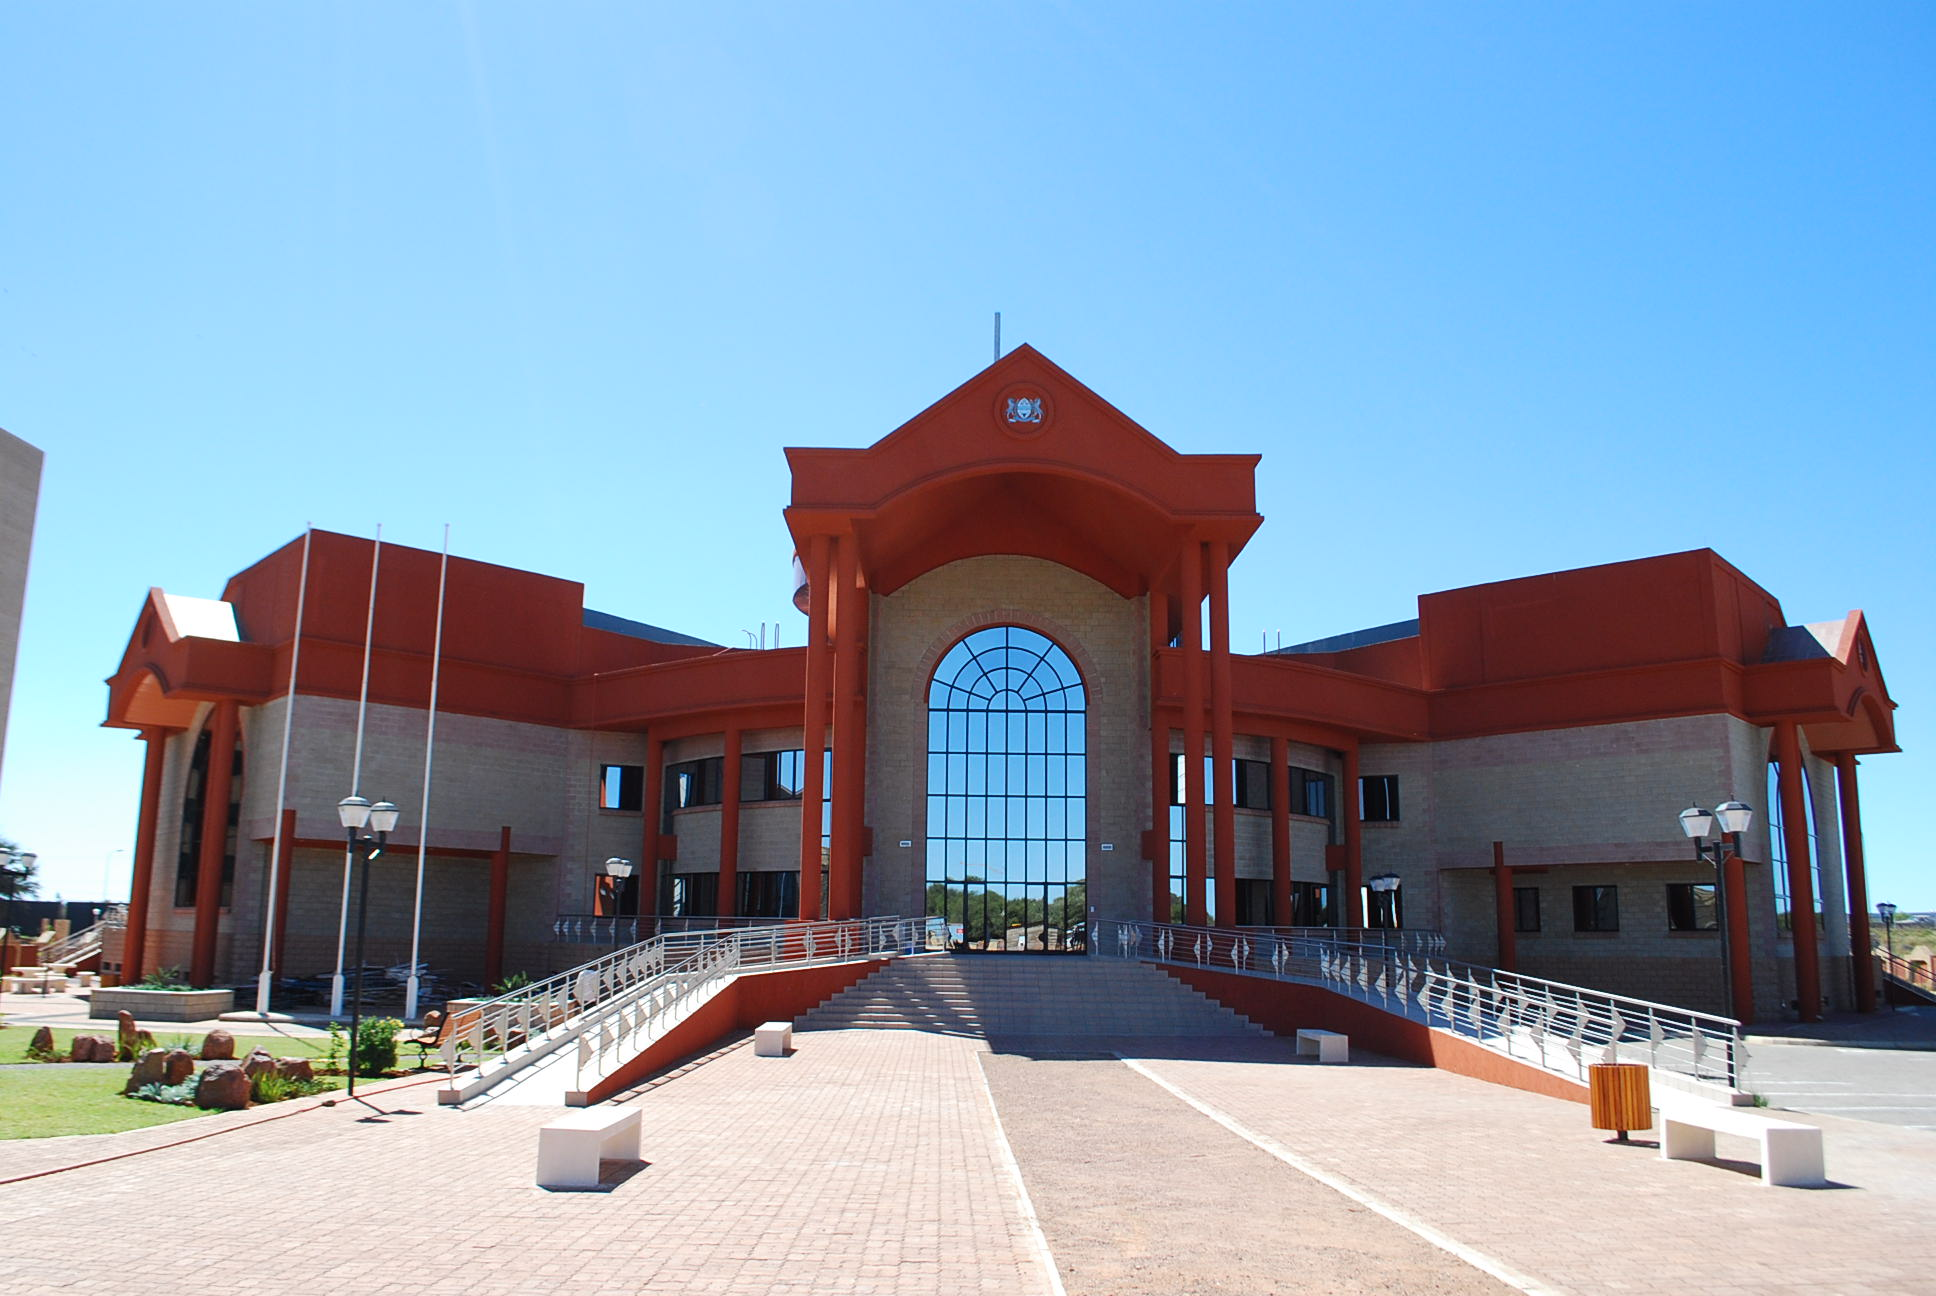 http://constructionreviewonline.com/2016/02/major-court-building-botswana-undergo-major-reconstruction/